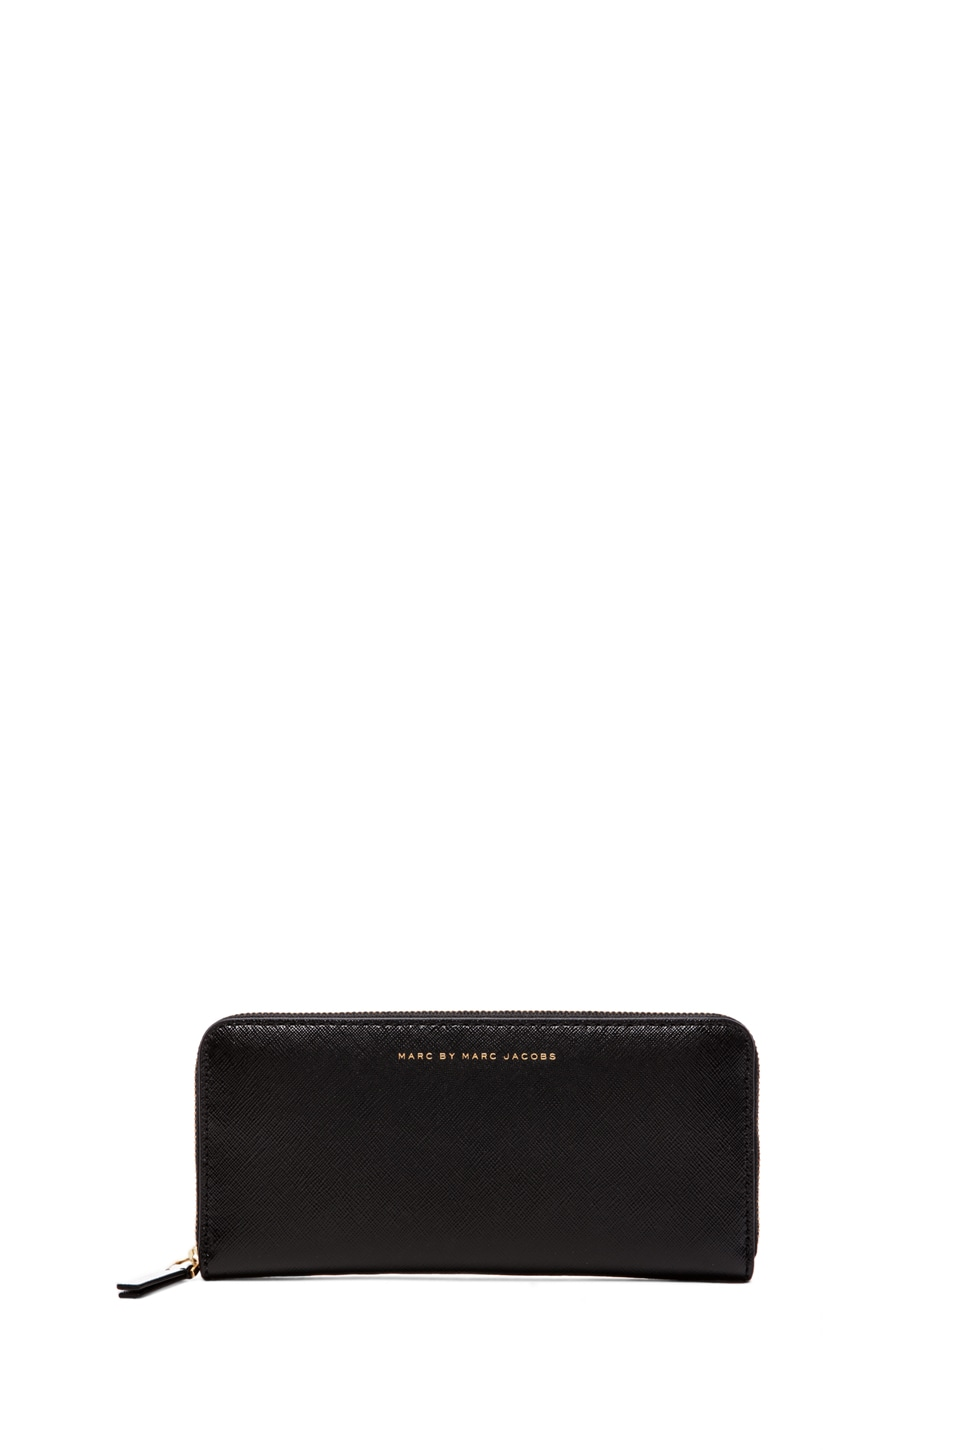 Marc by Marc Jacobs Sophisticato Colorblocked Slim Zip Around Wallet in Black